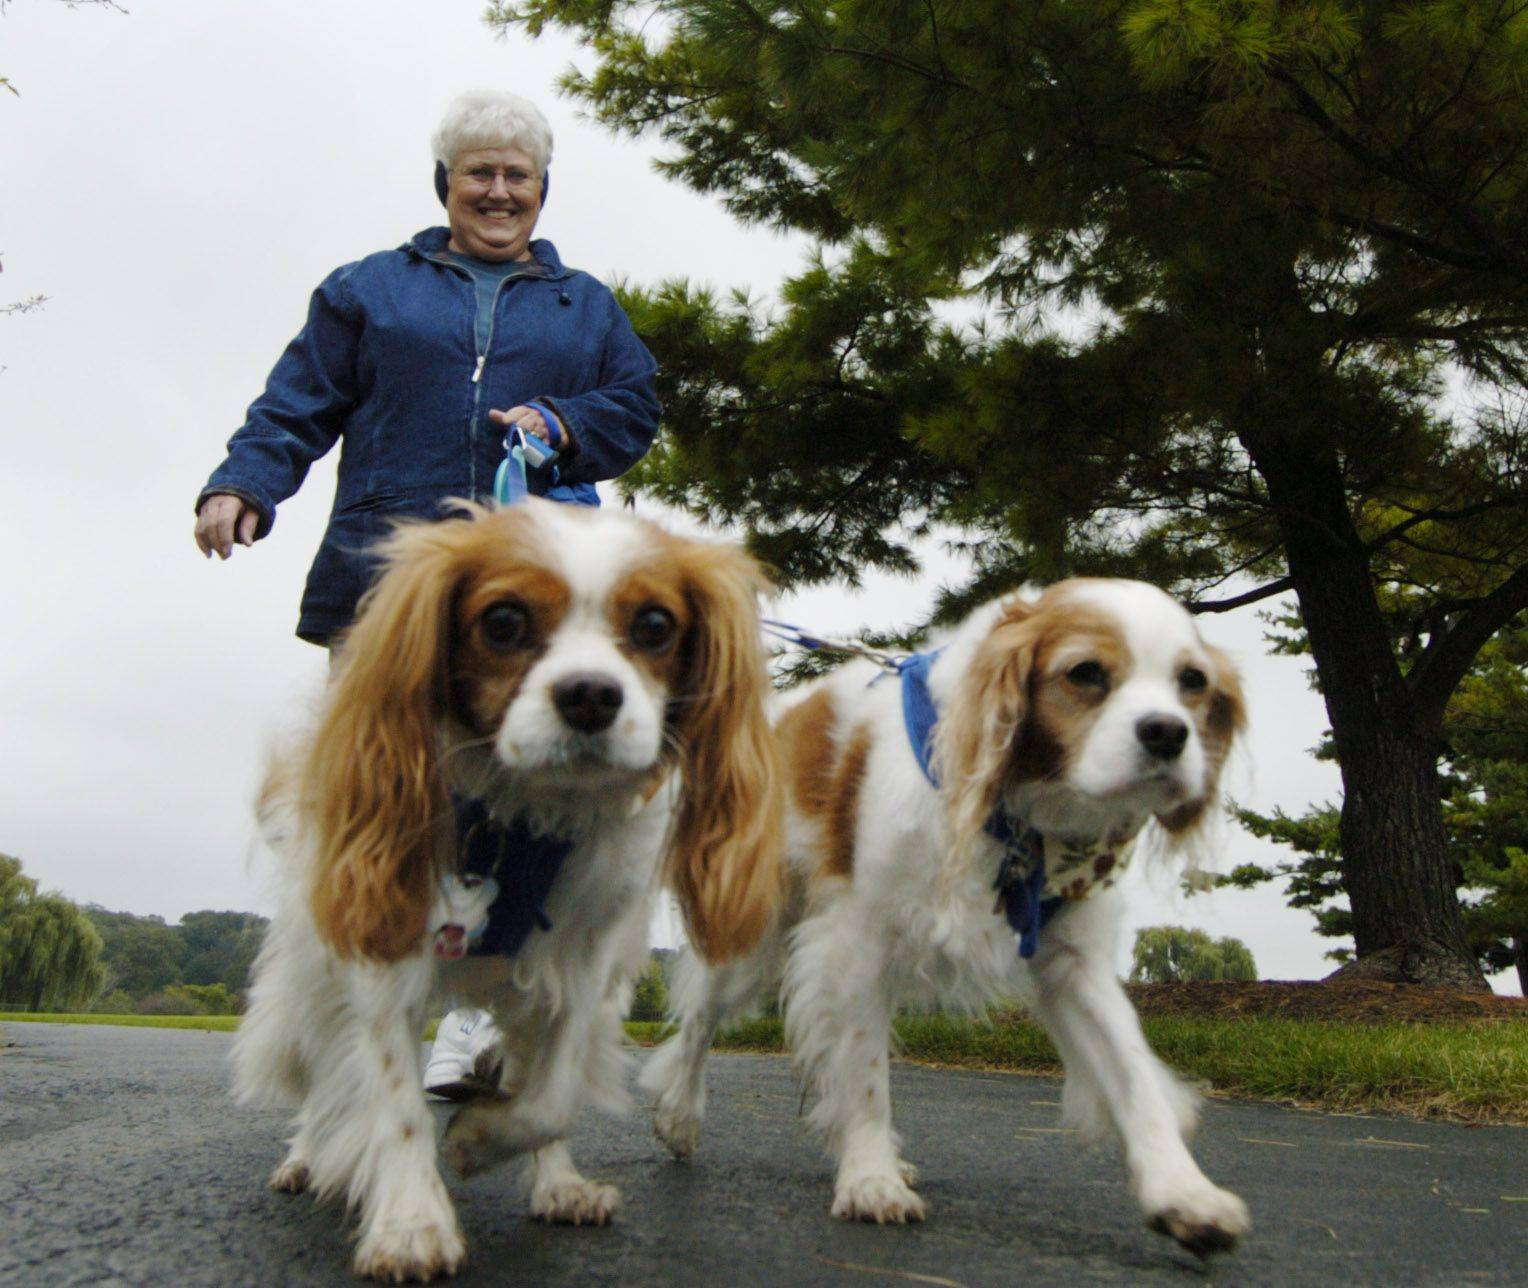 JOE LEWNARD/jlewnard@dailyherald.com Marie Brestel of Aurora walks her dogs Monty, left, and Danny, during �Barkapalooza,� the West Suburban Humane Society�s annual dog walk and pet expo at Lisle Community Park.